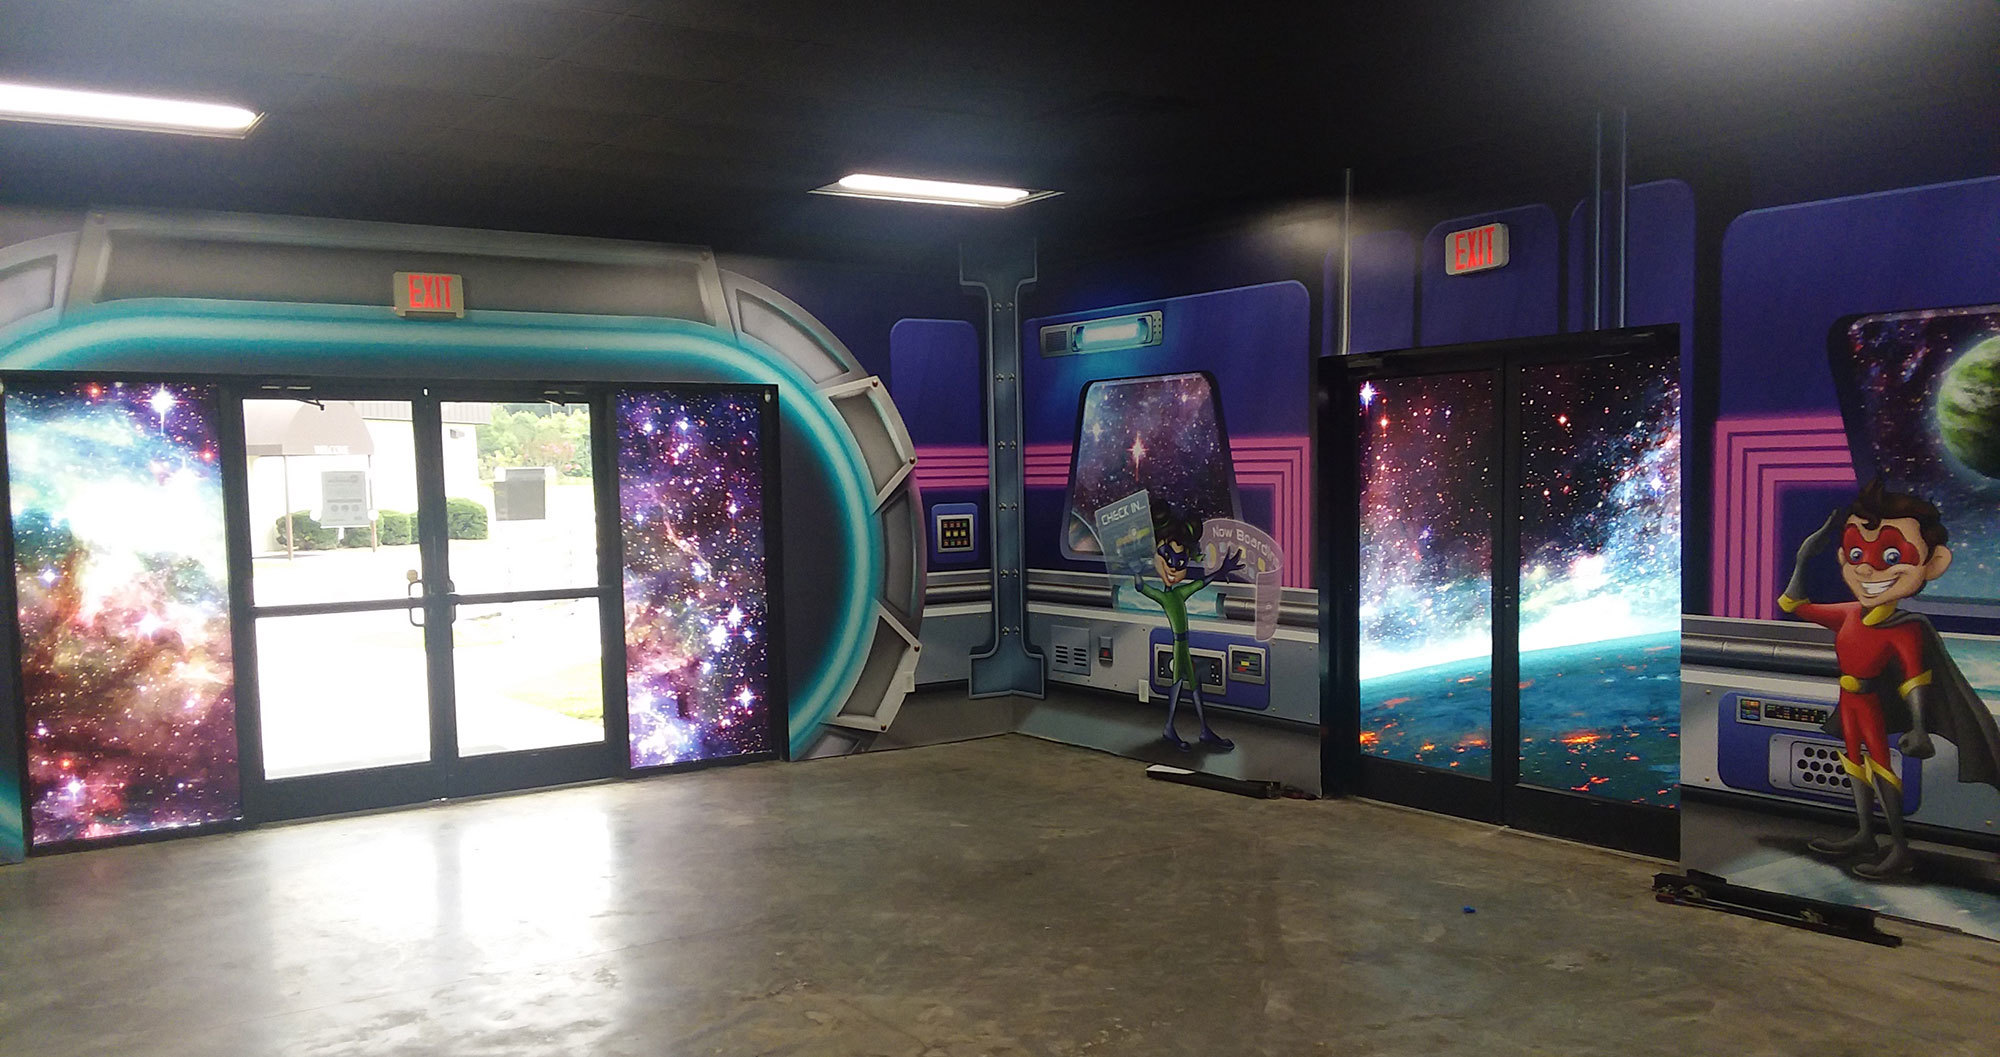 Example of Window Vinyl in a Space Themed Space at a Church